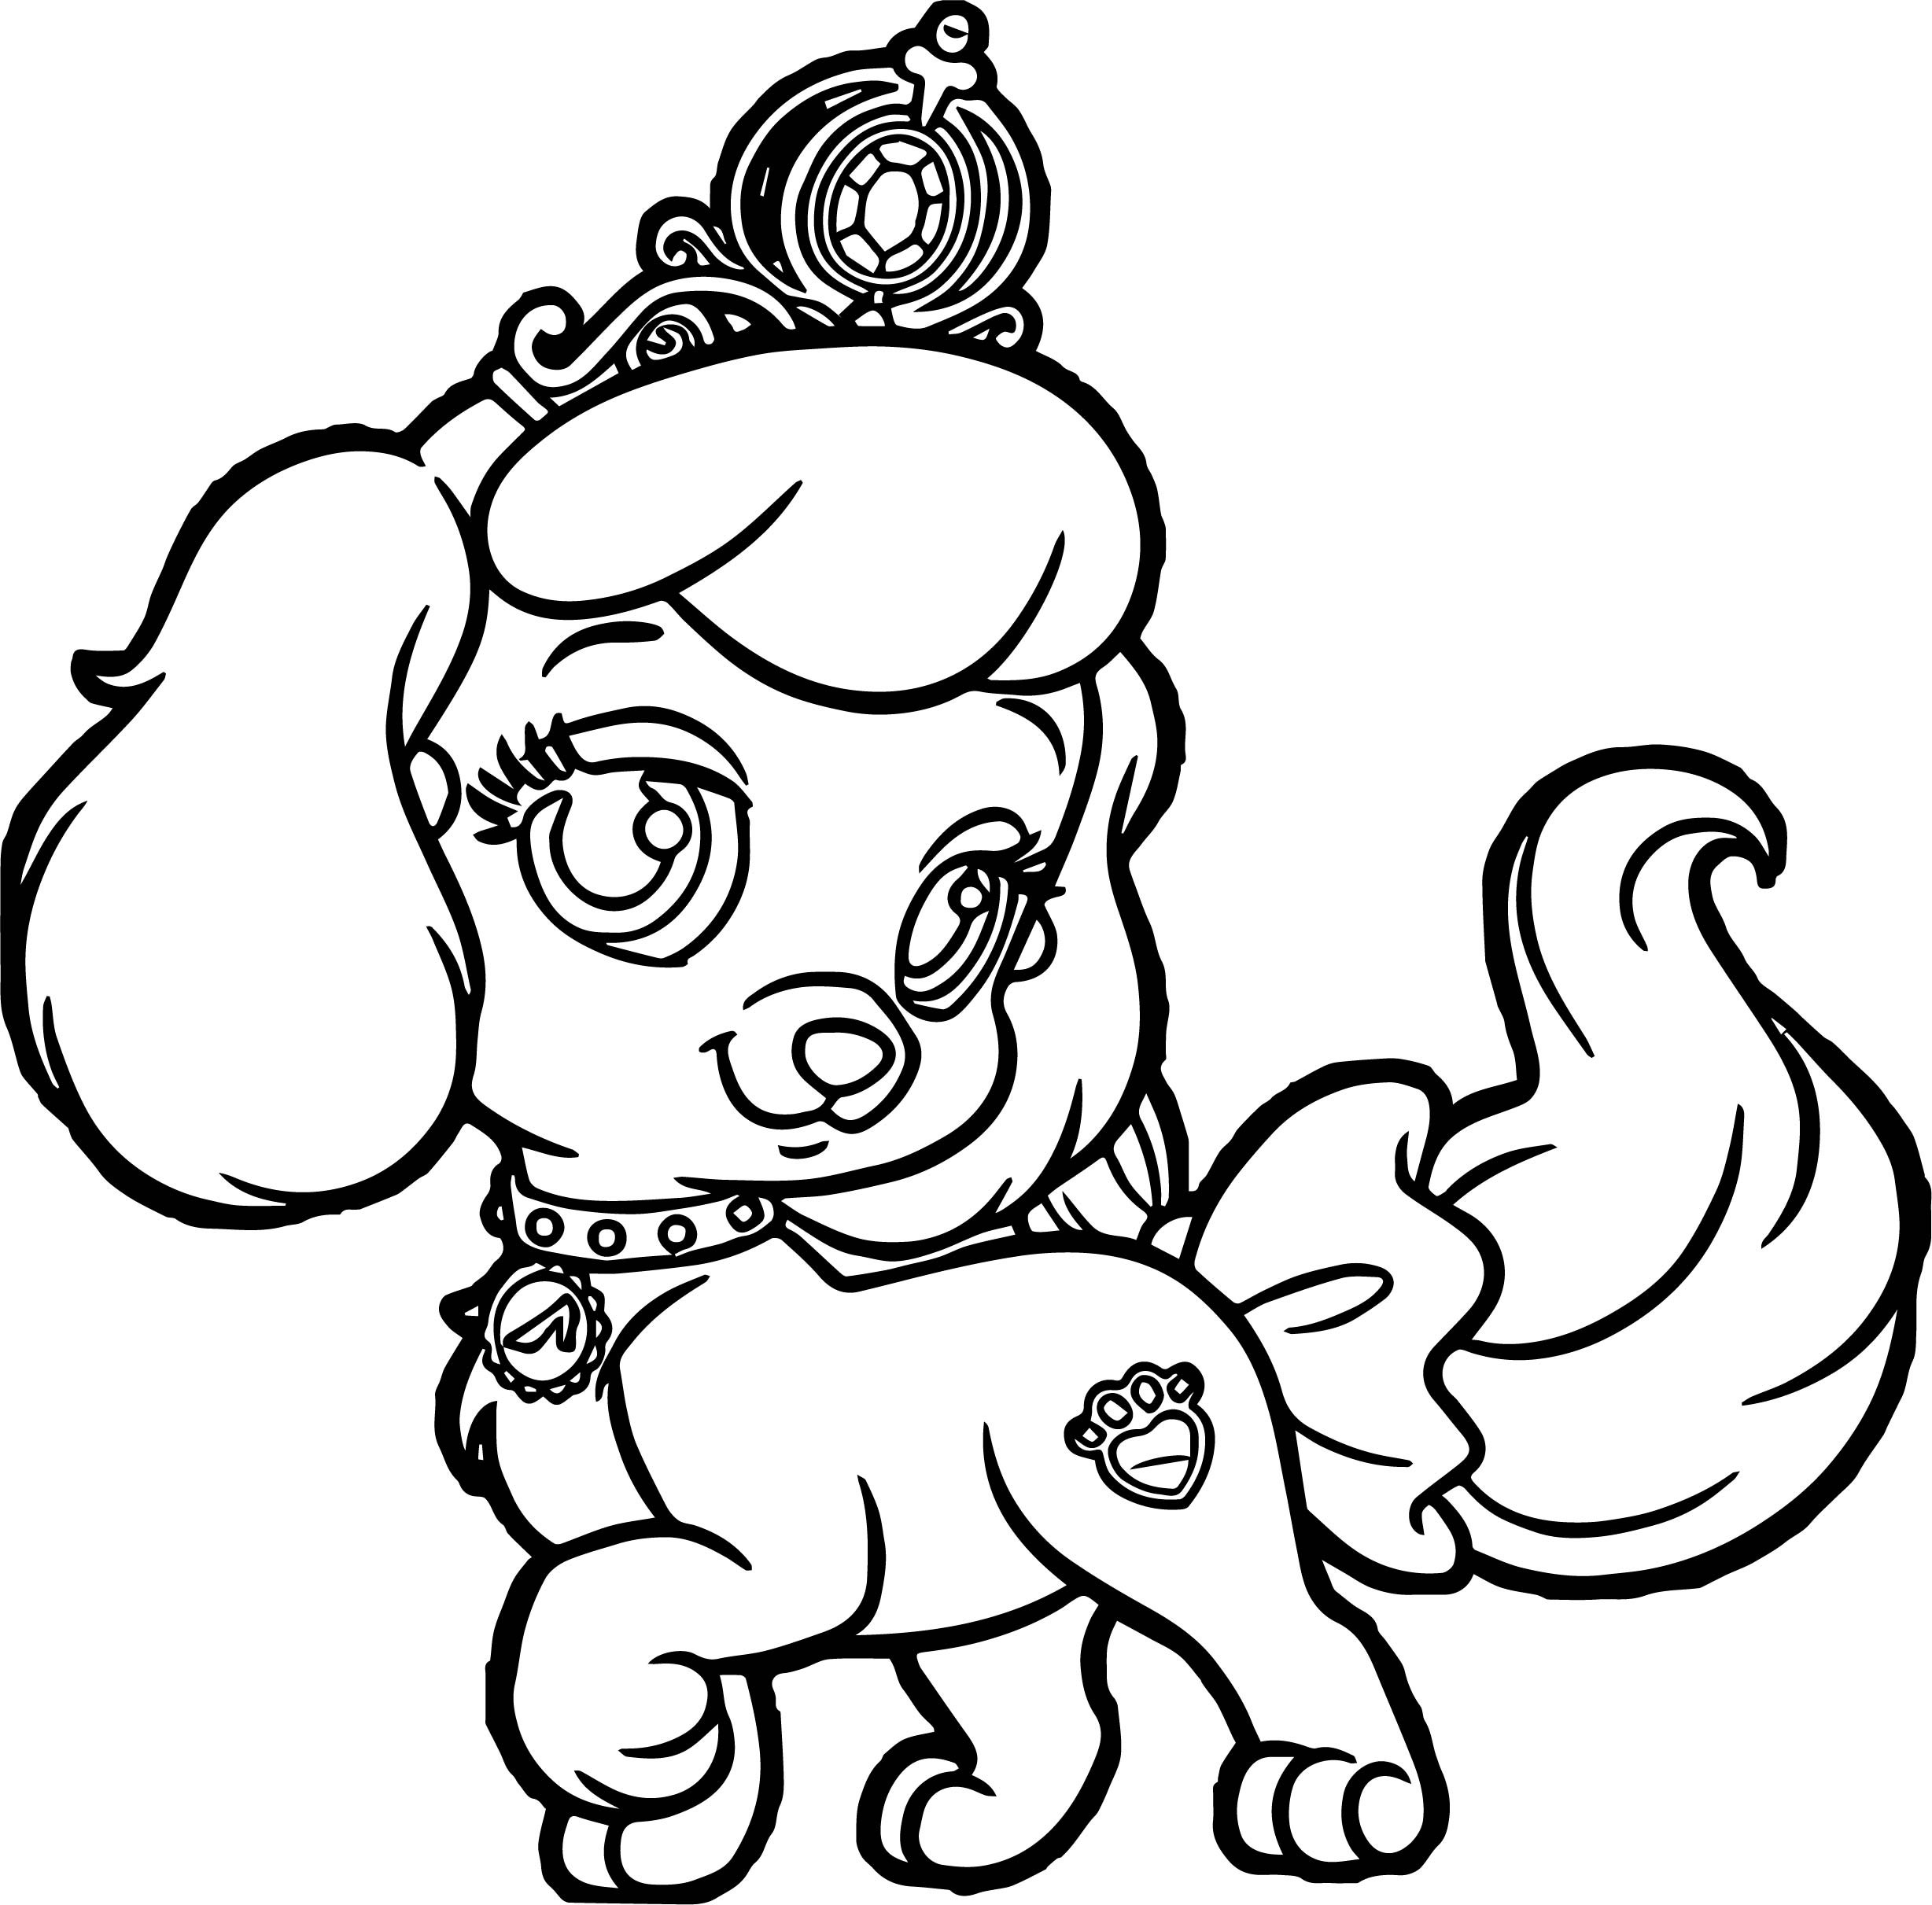 Best ideas about Puppy Coloring Sheets For Girls . Save or Pin Girl Pumpkin Pup Puppy Dog Coloring Page Now.